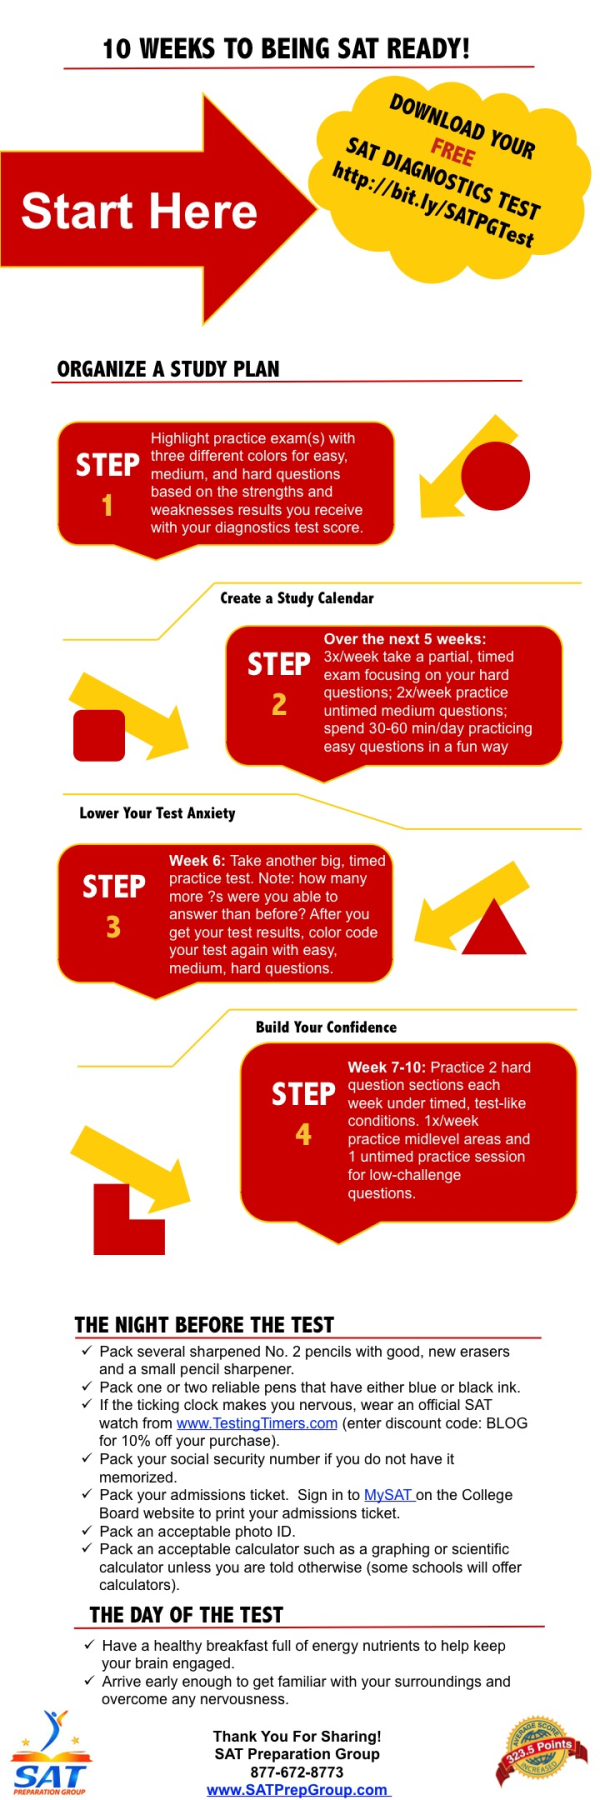 Create Your Own SAT Study Plan With This 10 Week Guide [Infographic]